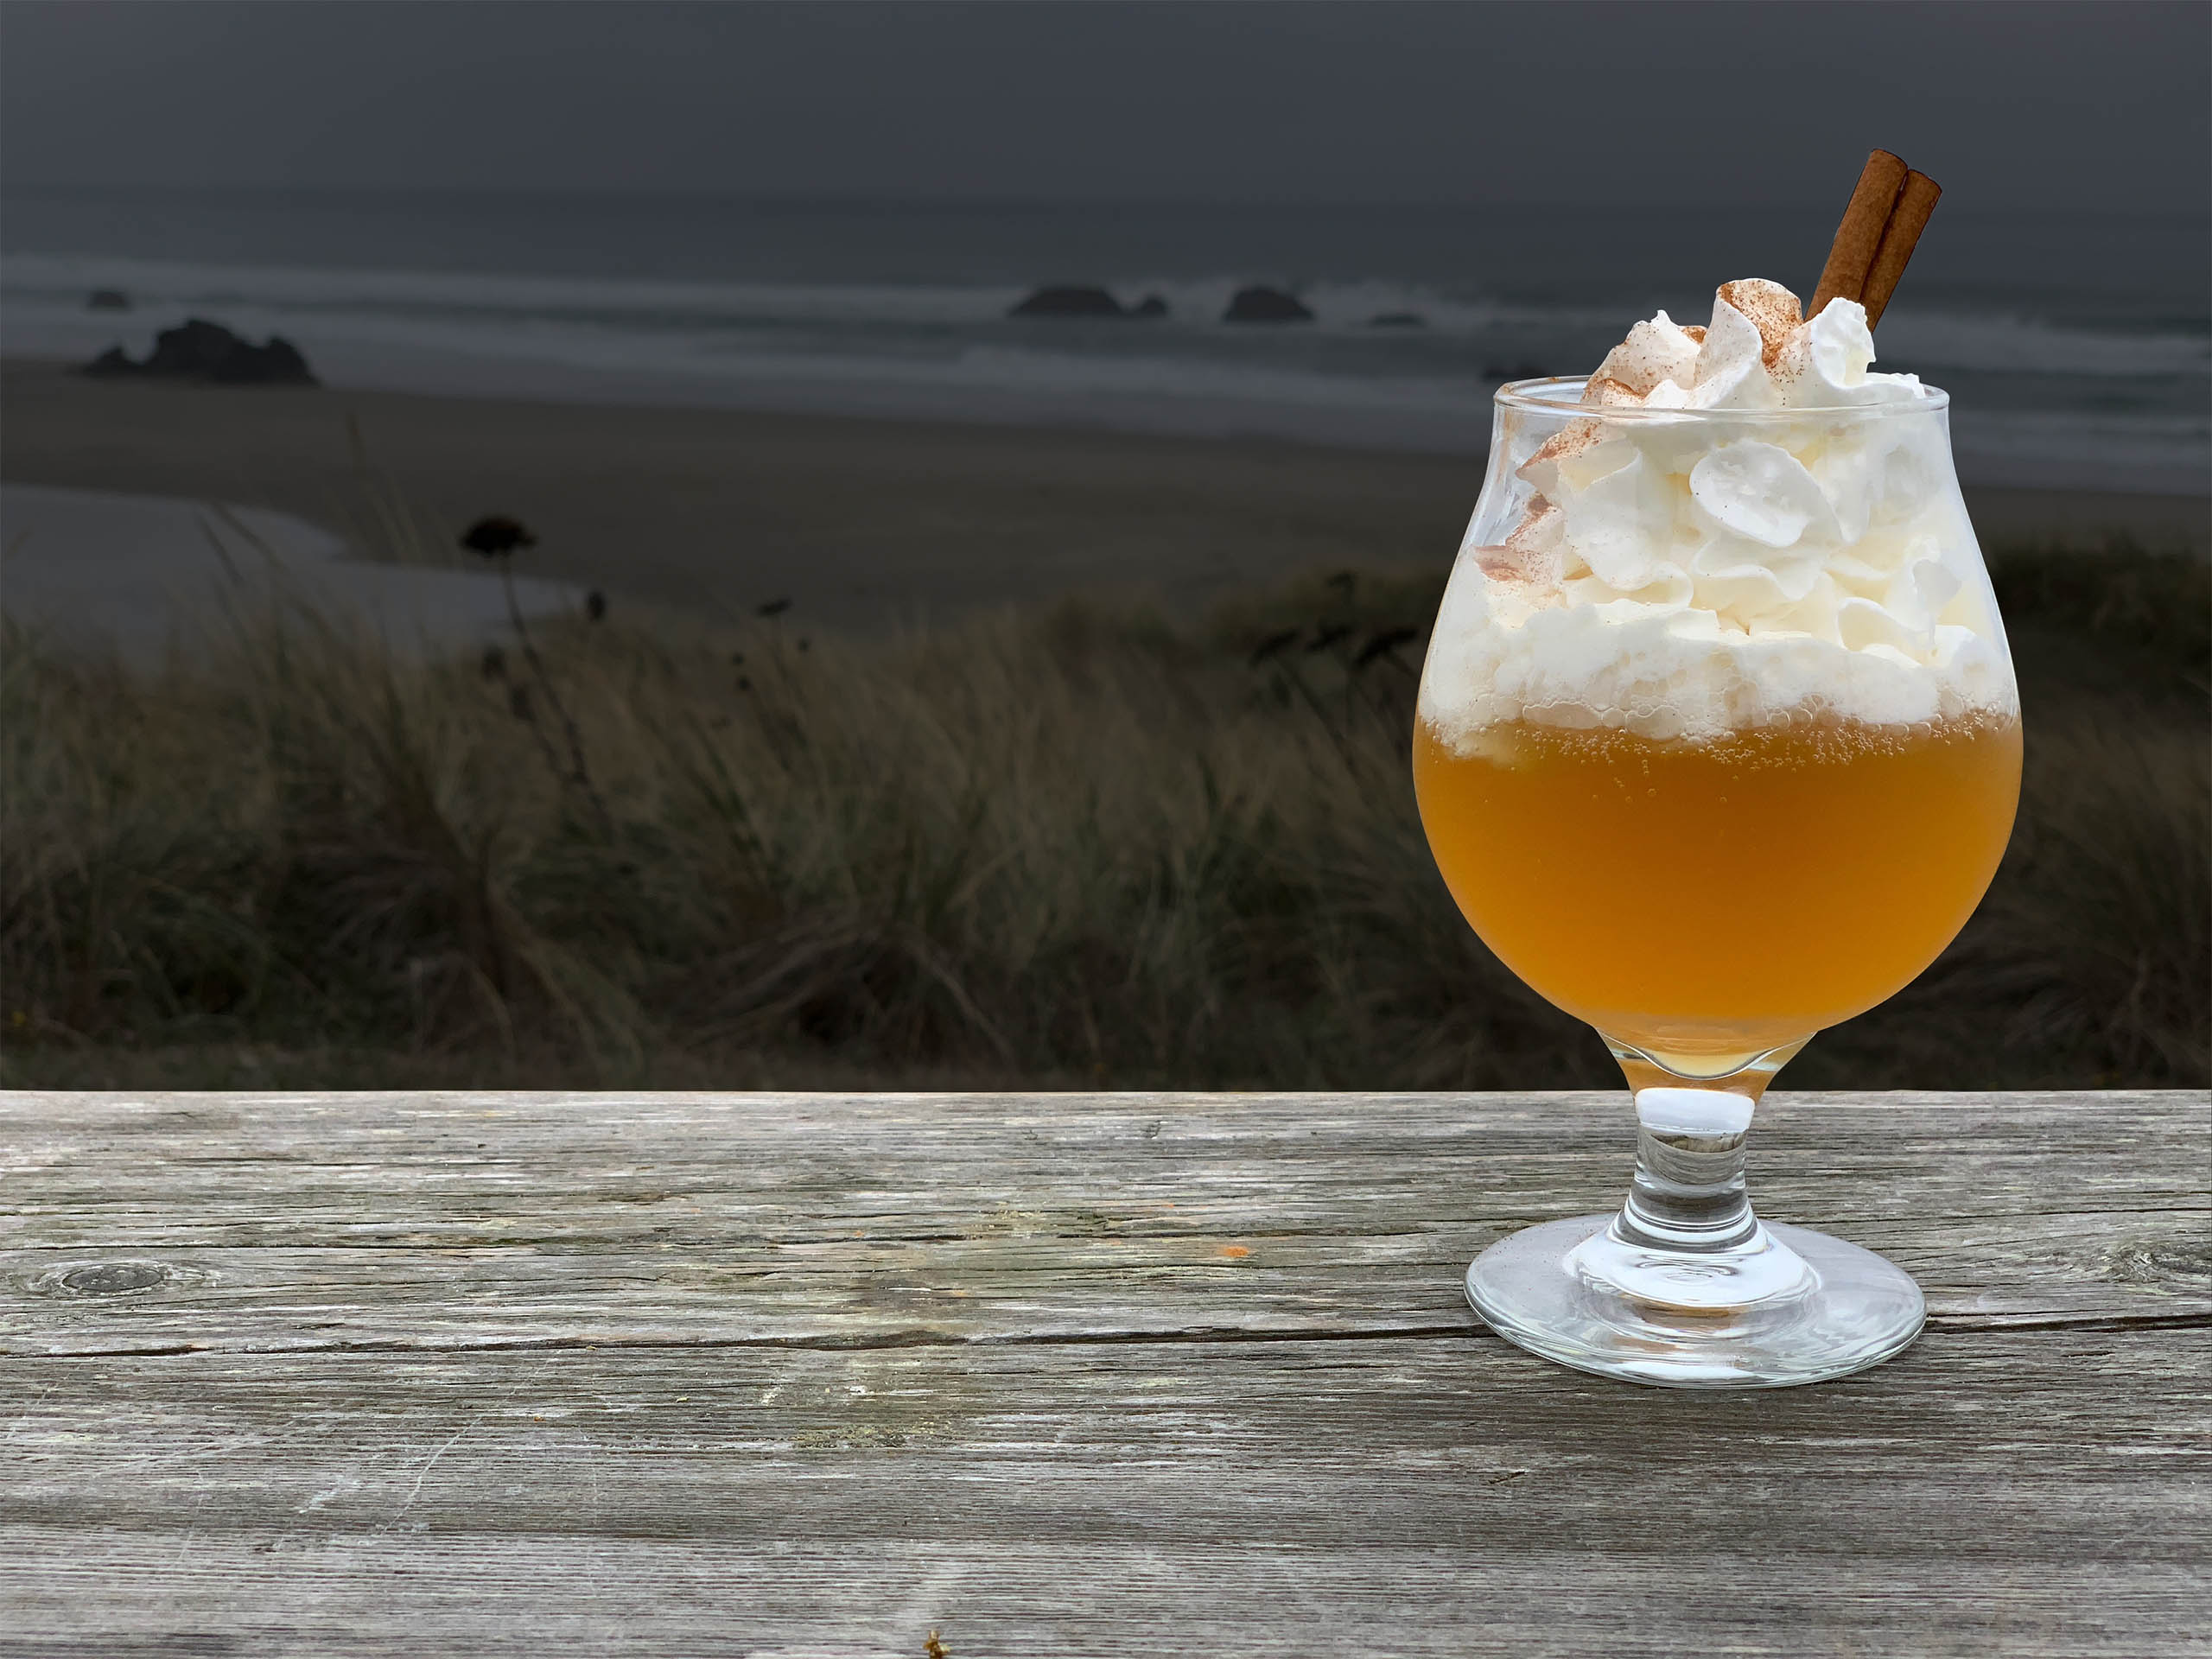 Bandon Rain Apple Pie Cider